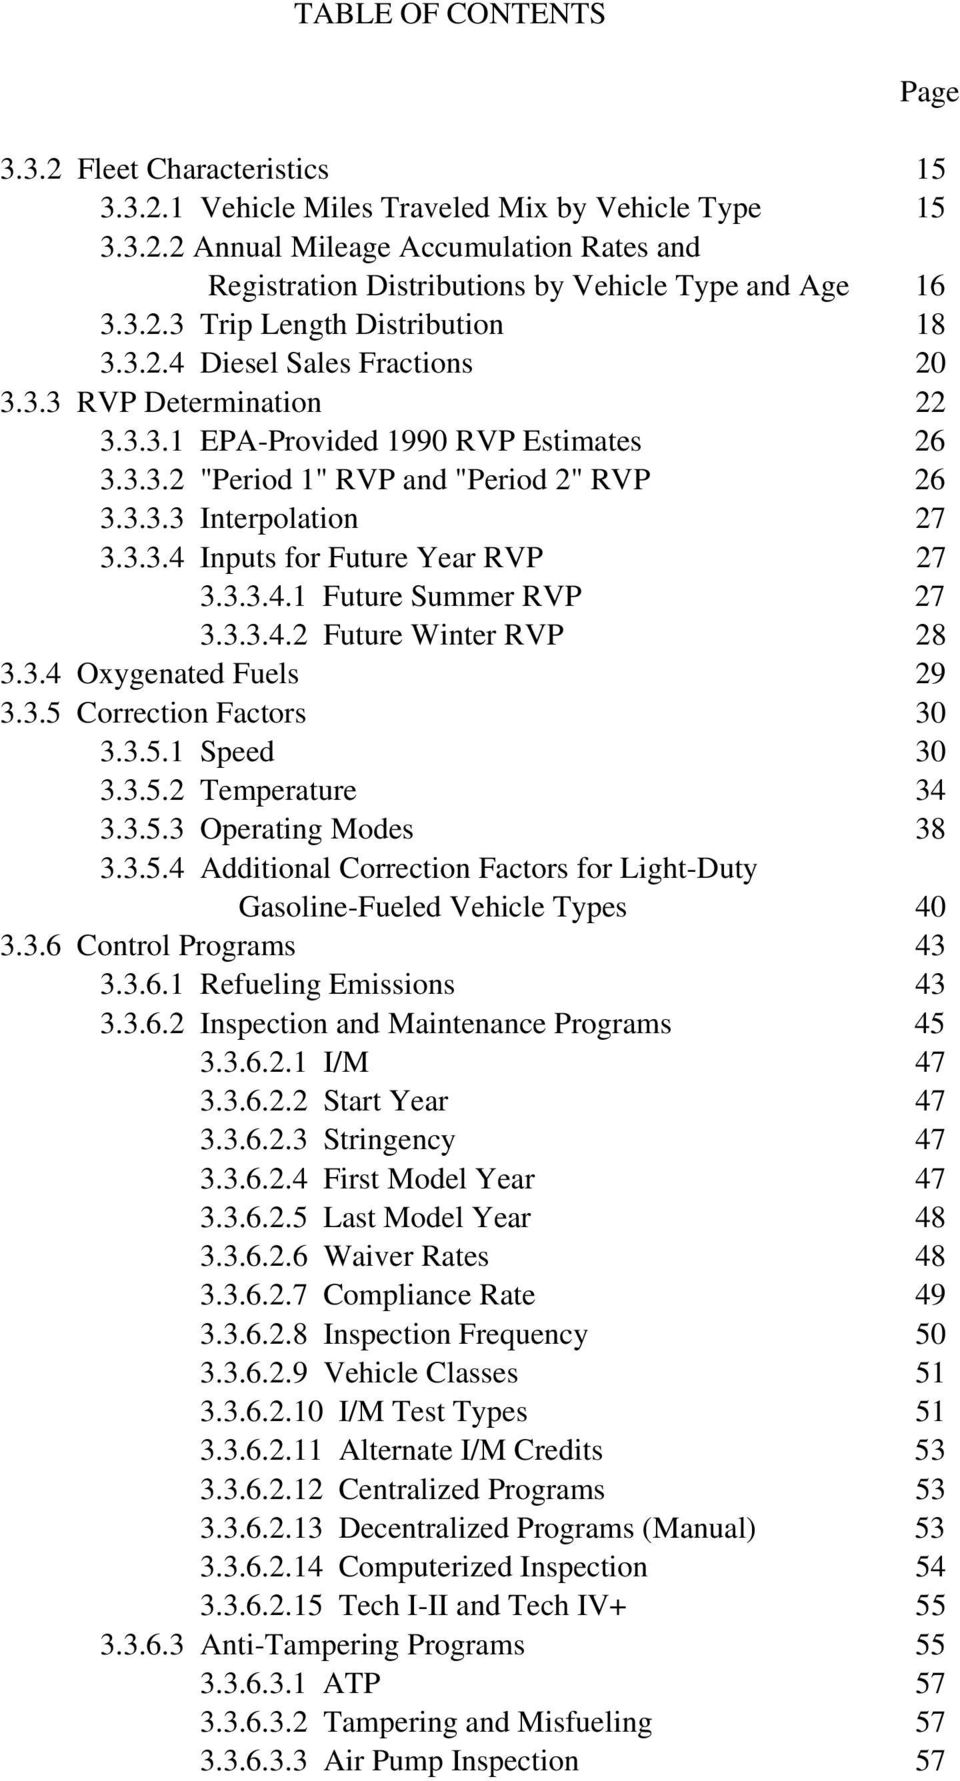 3.3.4 Inputs for Future Year RVP 27 3.3.3.4.1 Future Summer RVP 27 3.3.3.4.2 Future Winter RVP 28 3.3.4 Oxygenated Fuels 29 3.3.5 Correction Factors 30 3.3.5.1 Speed 30 3.3.5.2 Temperature 34 3.3.5.3 Operating Modes 38 3.